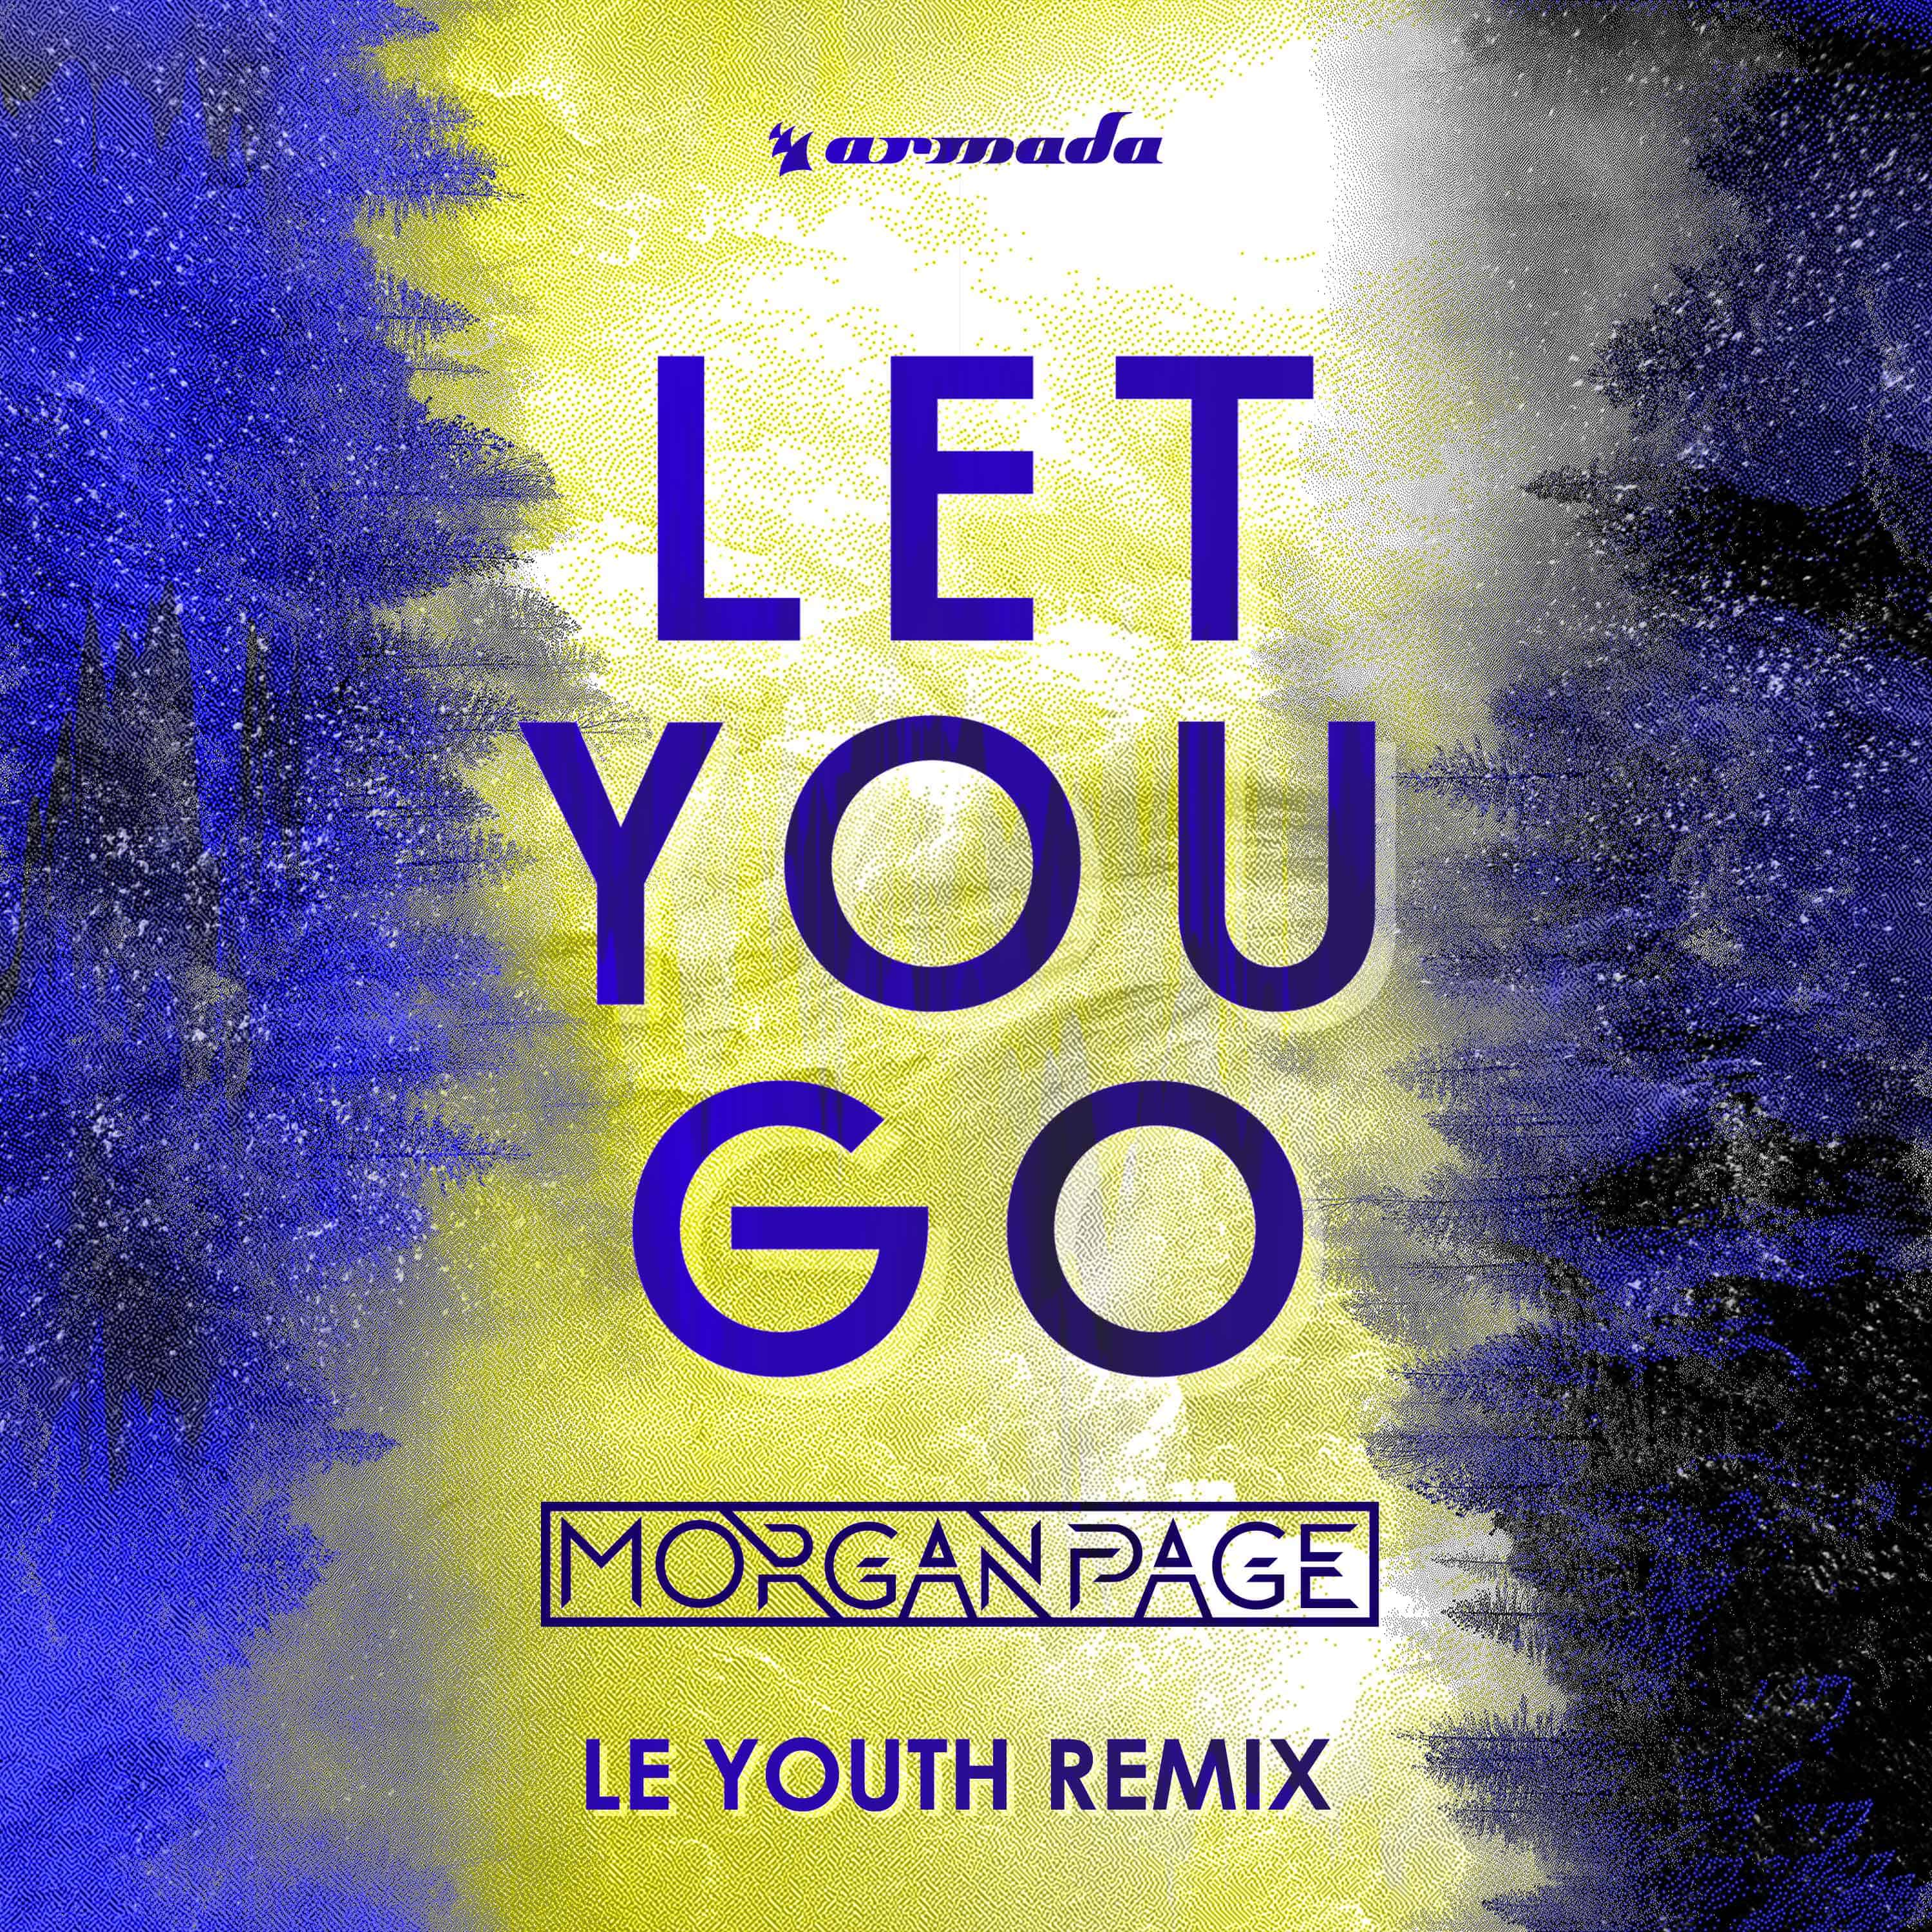 """Morgan Page releases """"Let You Go (Le Youth Remix)"""""""